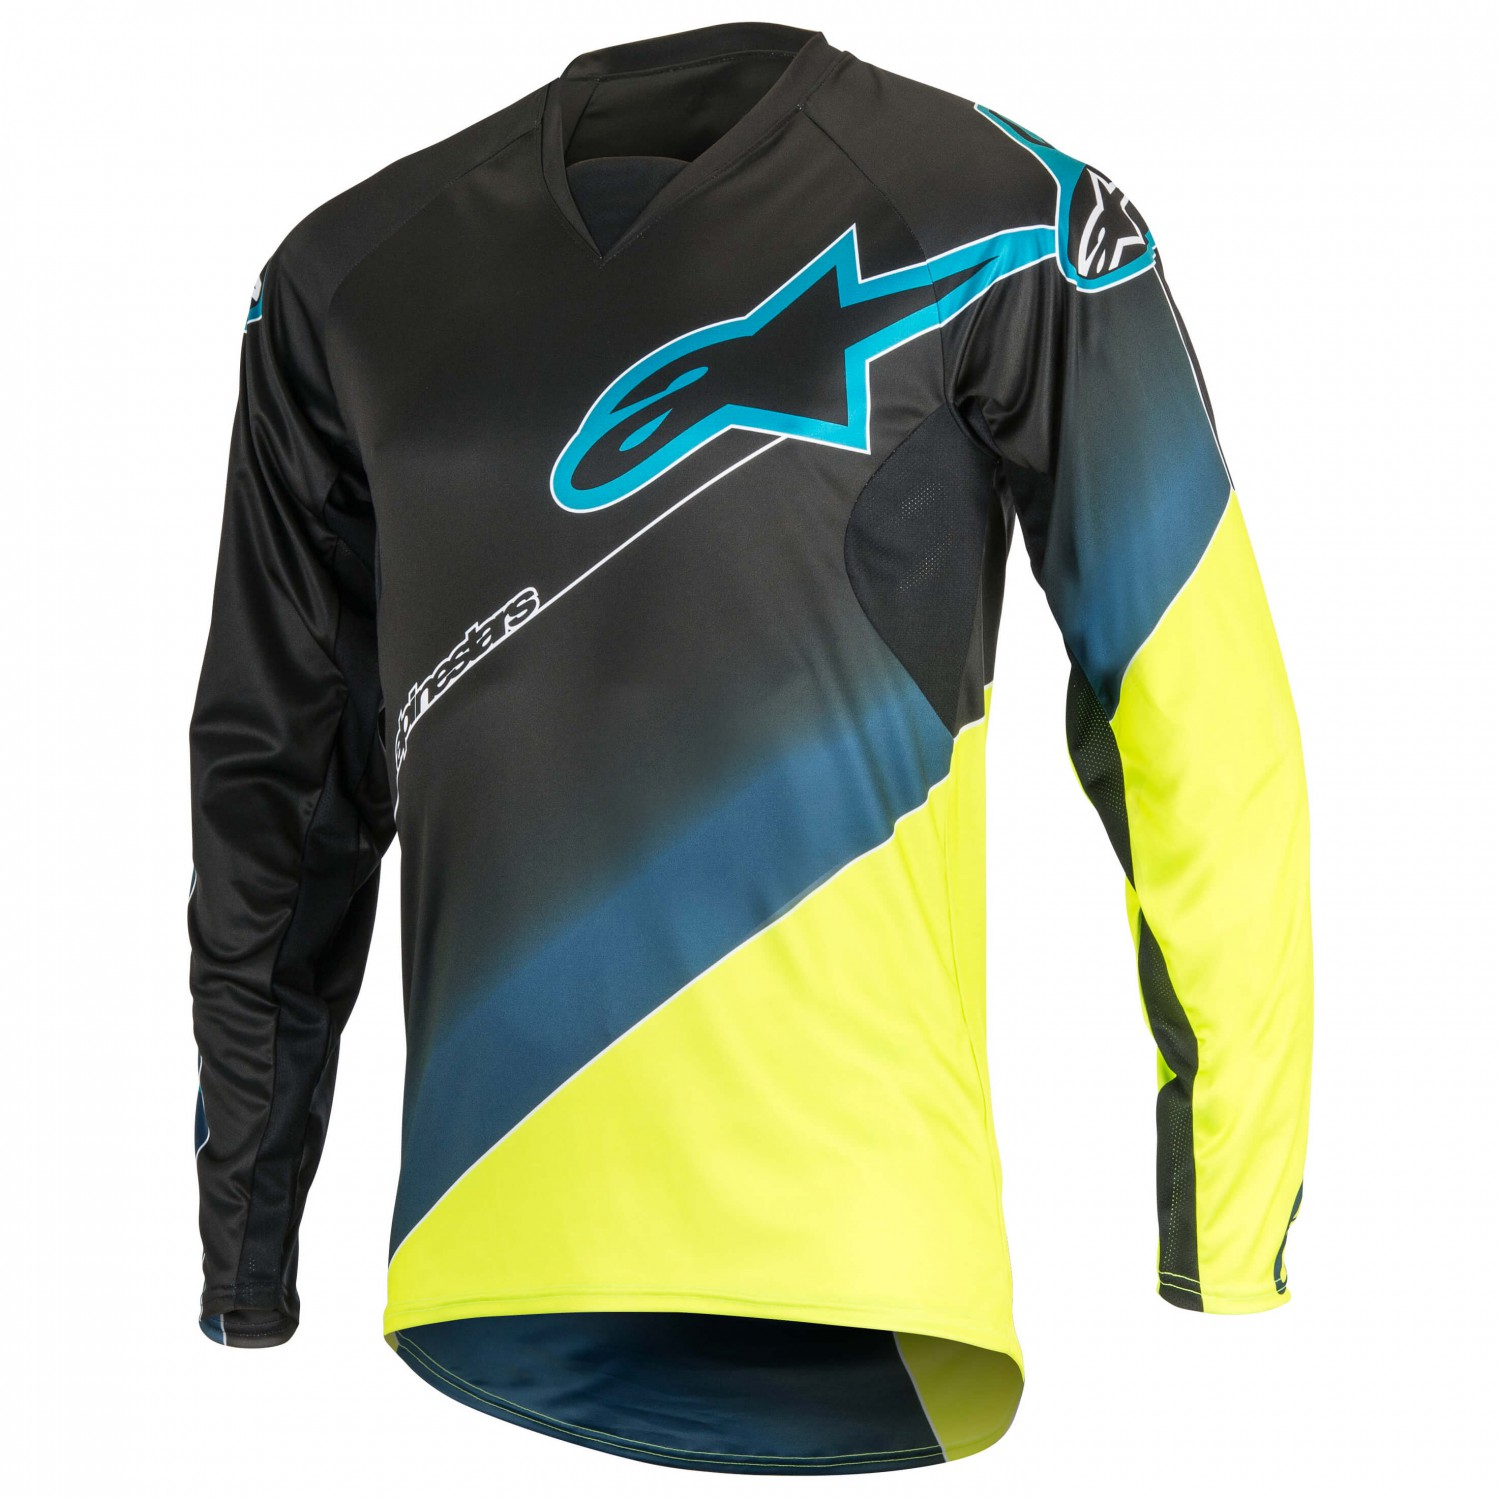 ... Alpinestars - Sight Vector L S Jersey - Cycling jersey ... c239183c5